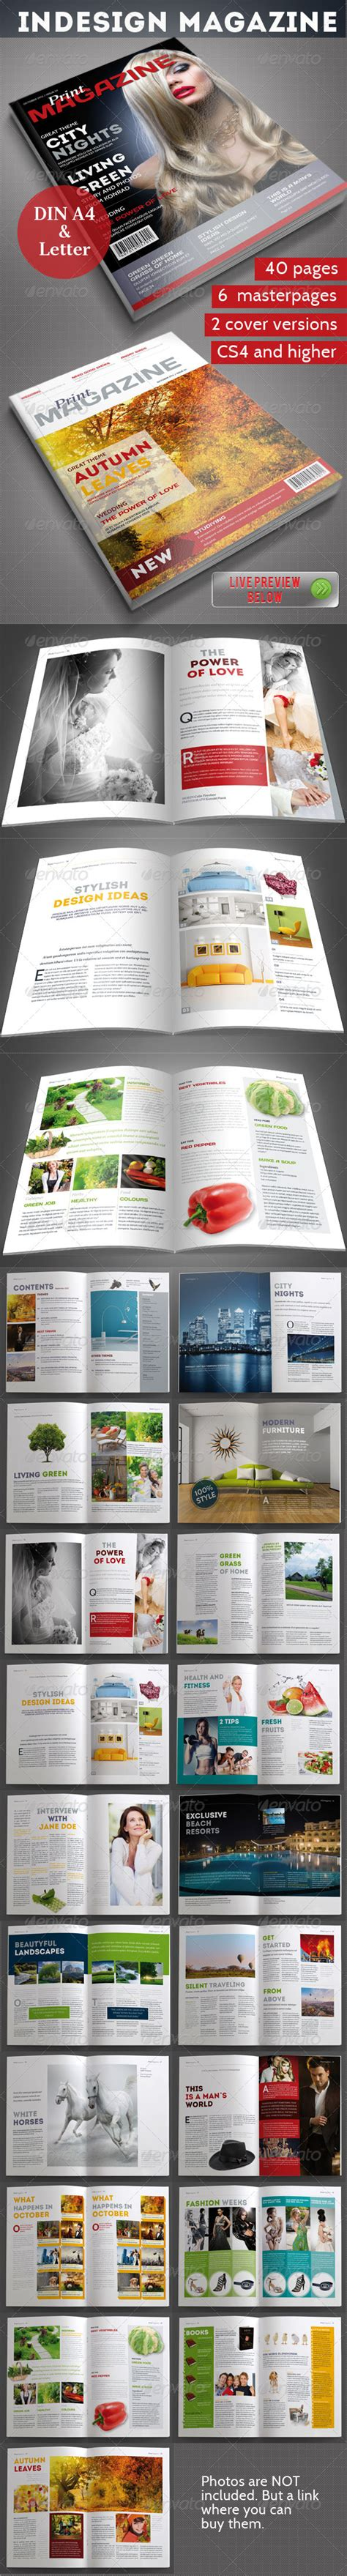 indesign magazine template 40 pages print ad templates